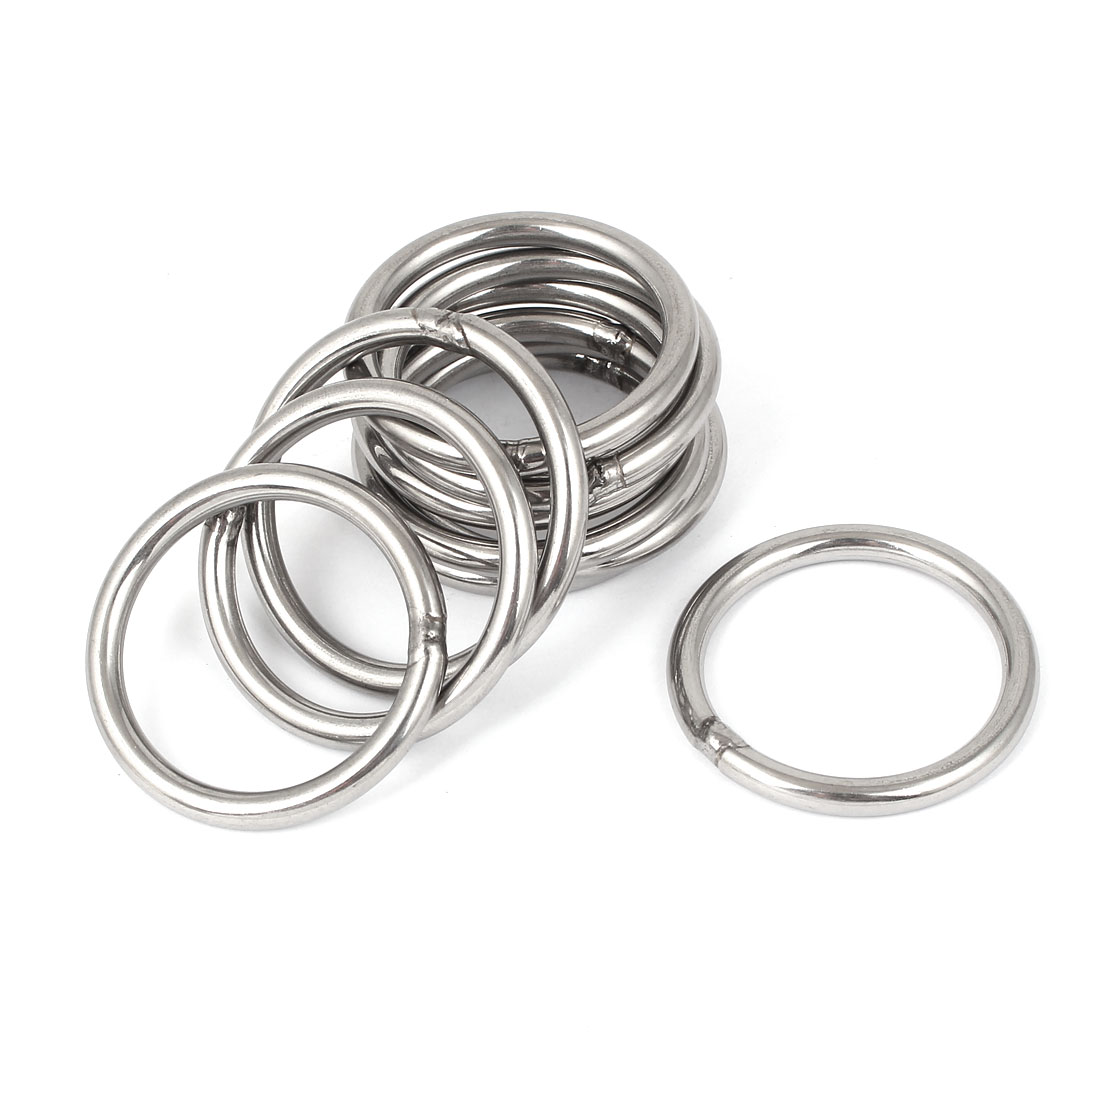 M5 x 50mm 201 Stainless Steel Webbing Strapping Welded Round O Rings 10 Pcs